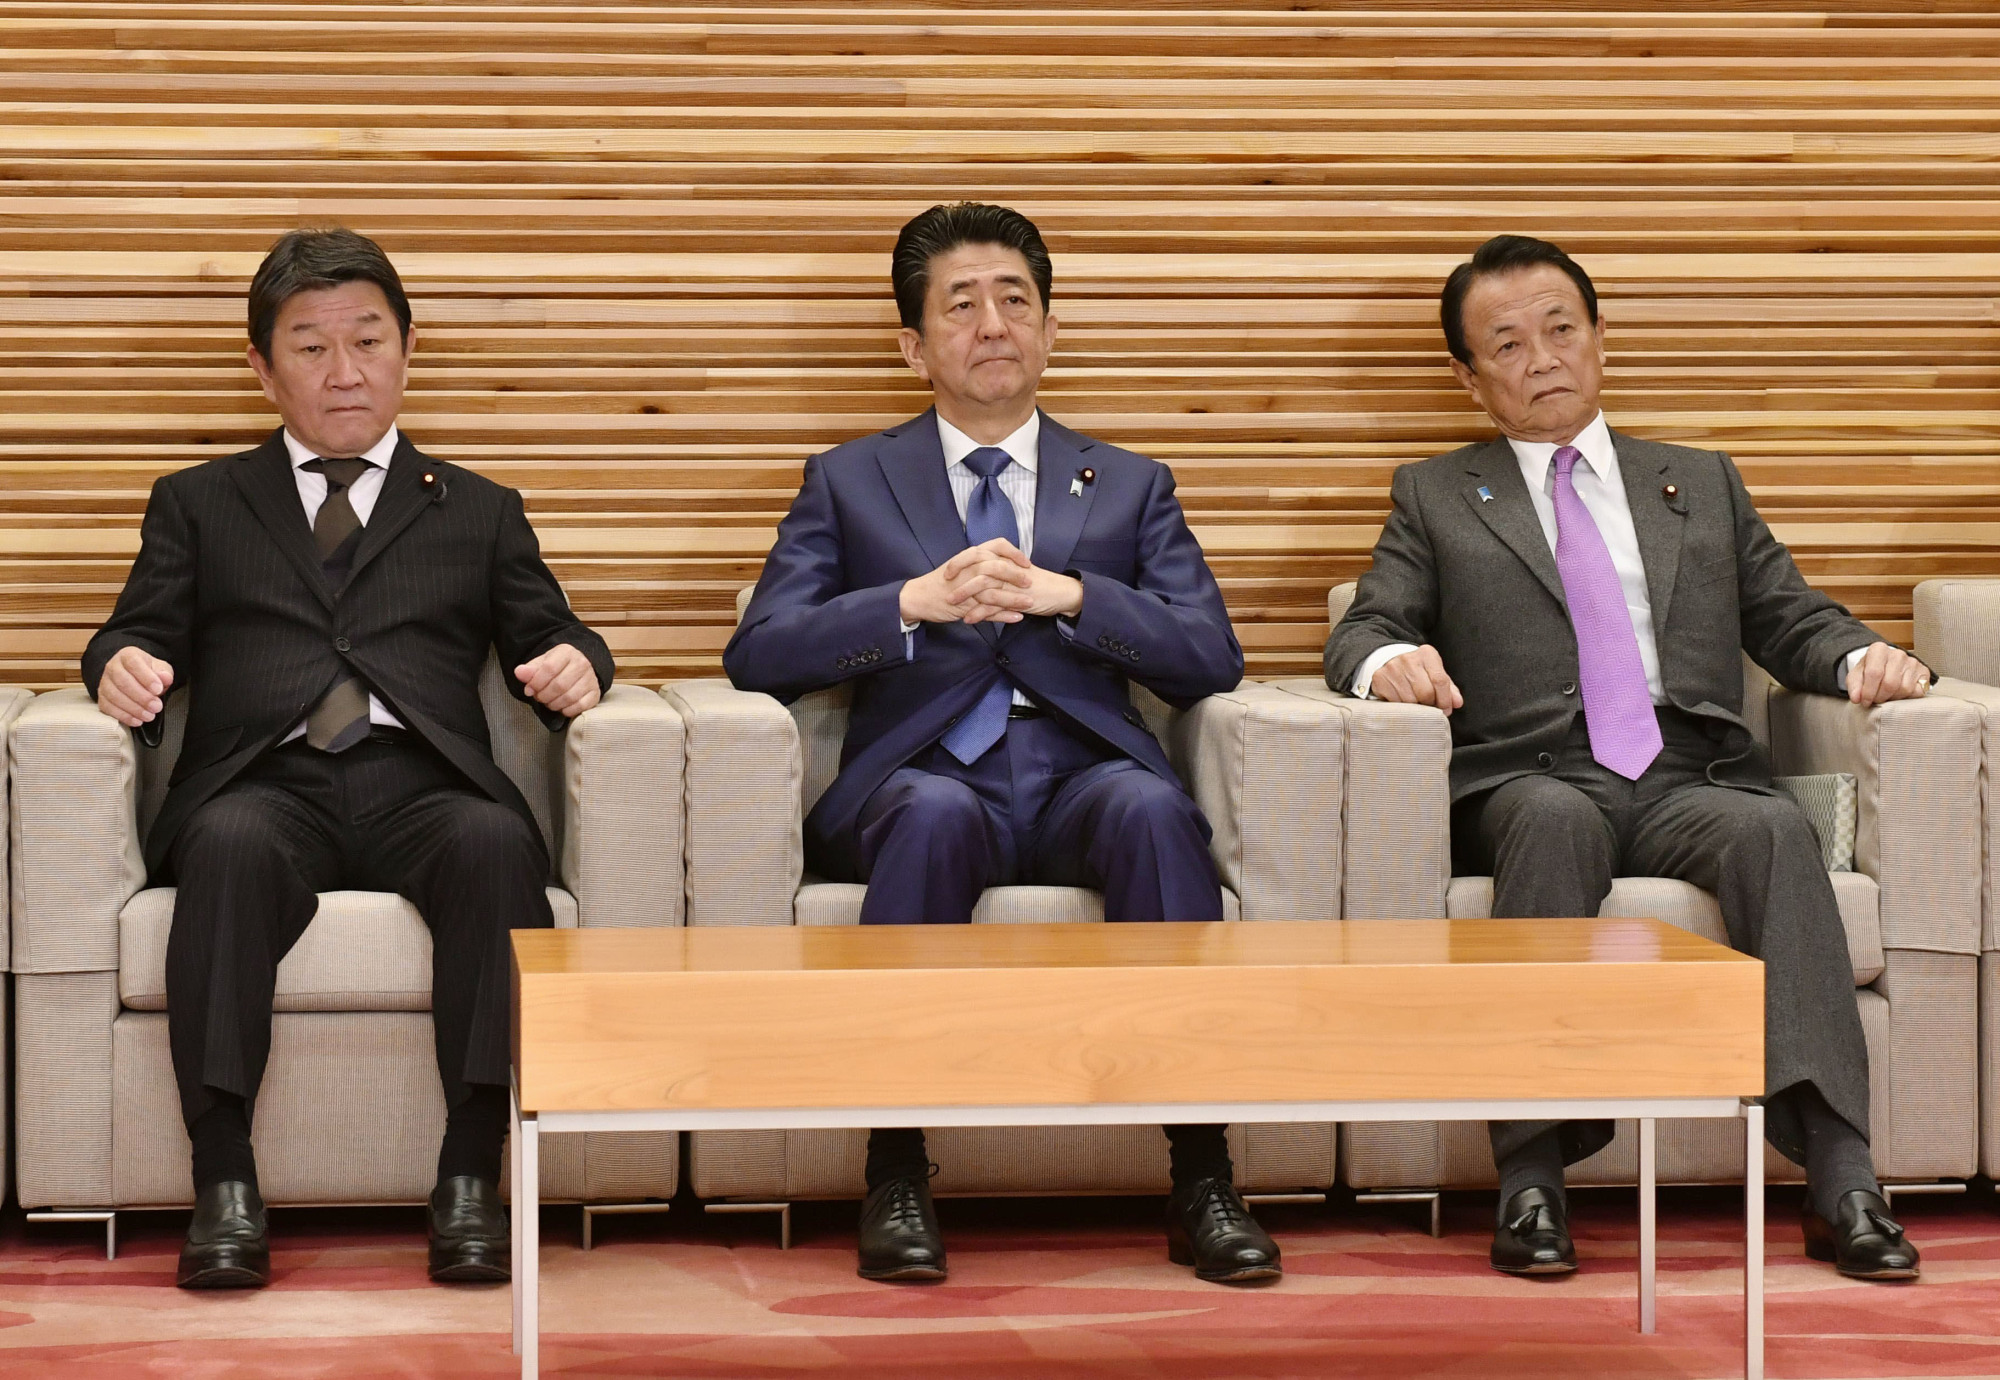 Flanked by Foreign Minister Toshimitsu Motegi (left) and Finance Minister Taro Aso, Prime Minister Shinzo Abe attends a Cabinet meeting Friday to approve bills on a tax reform package for fiscal 2020.   KYODO